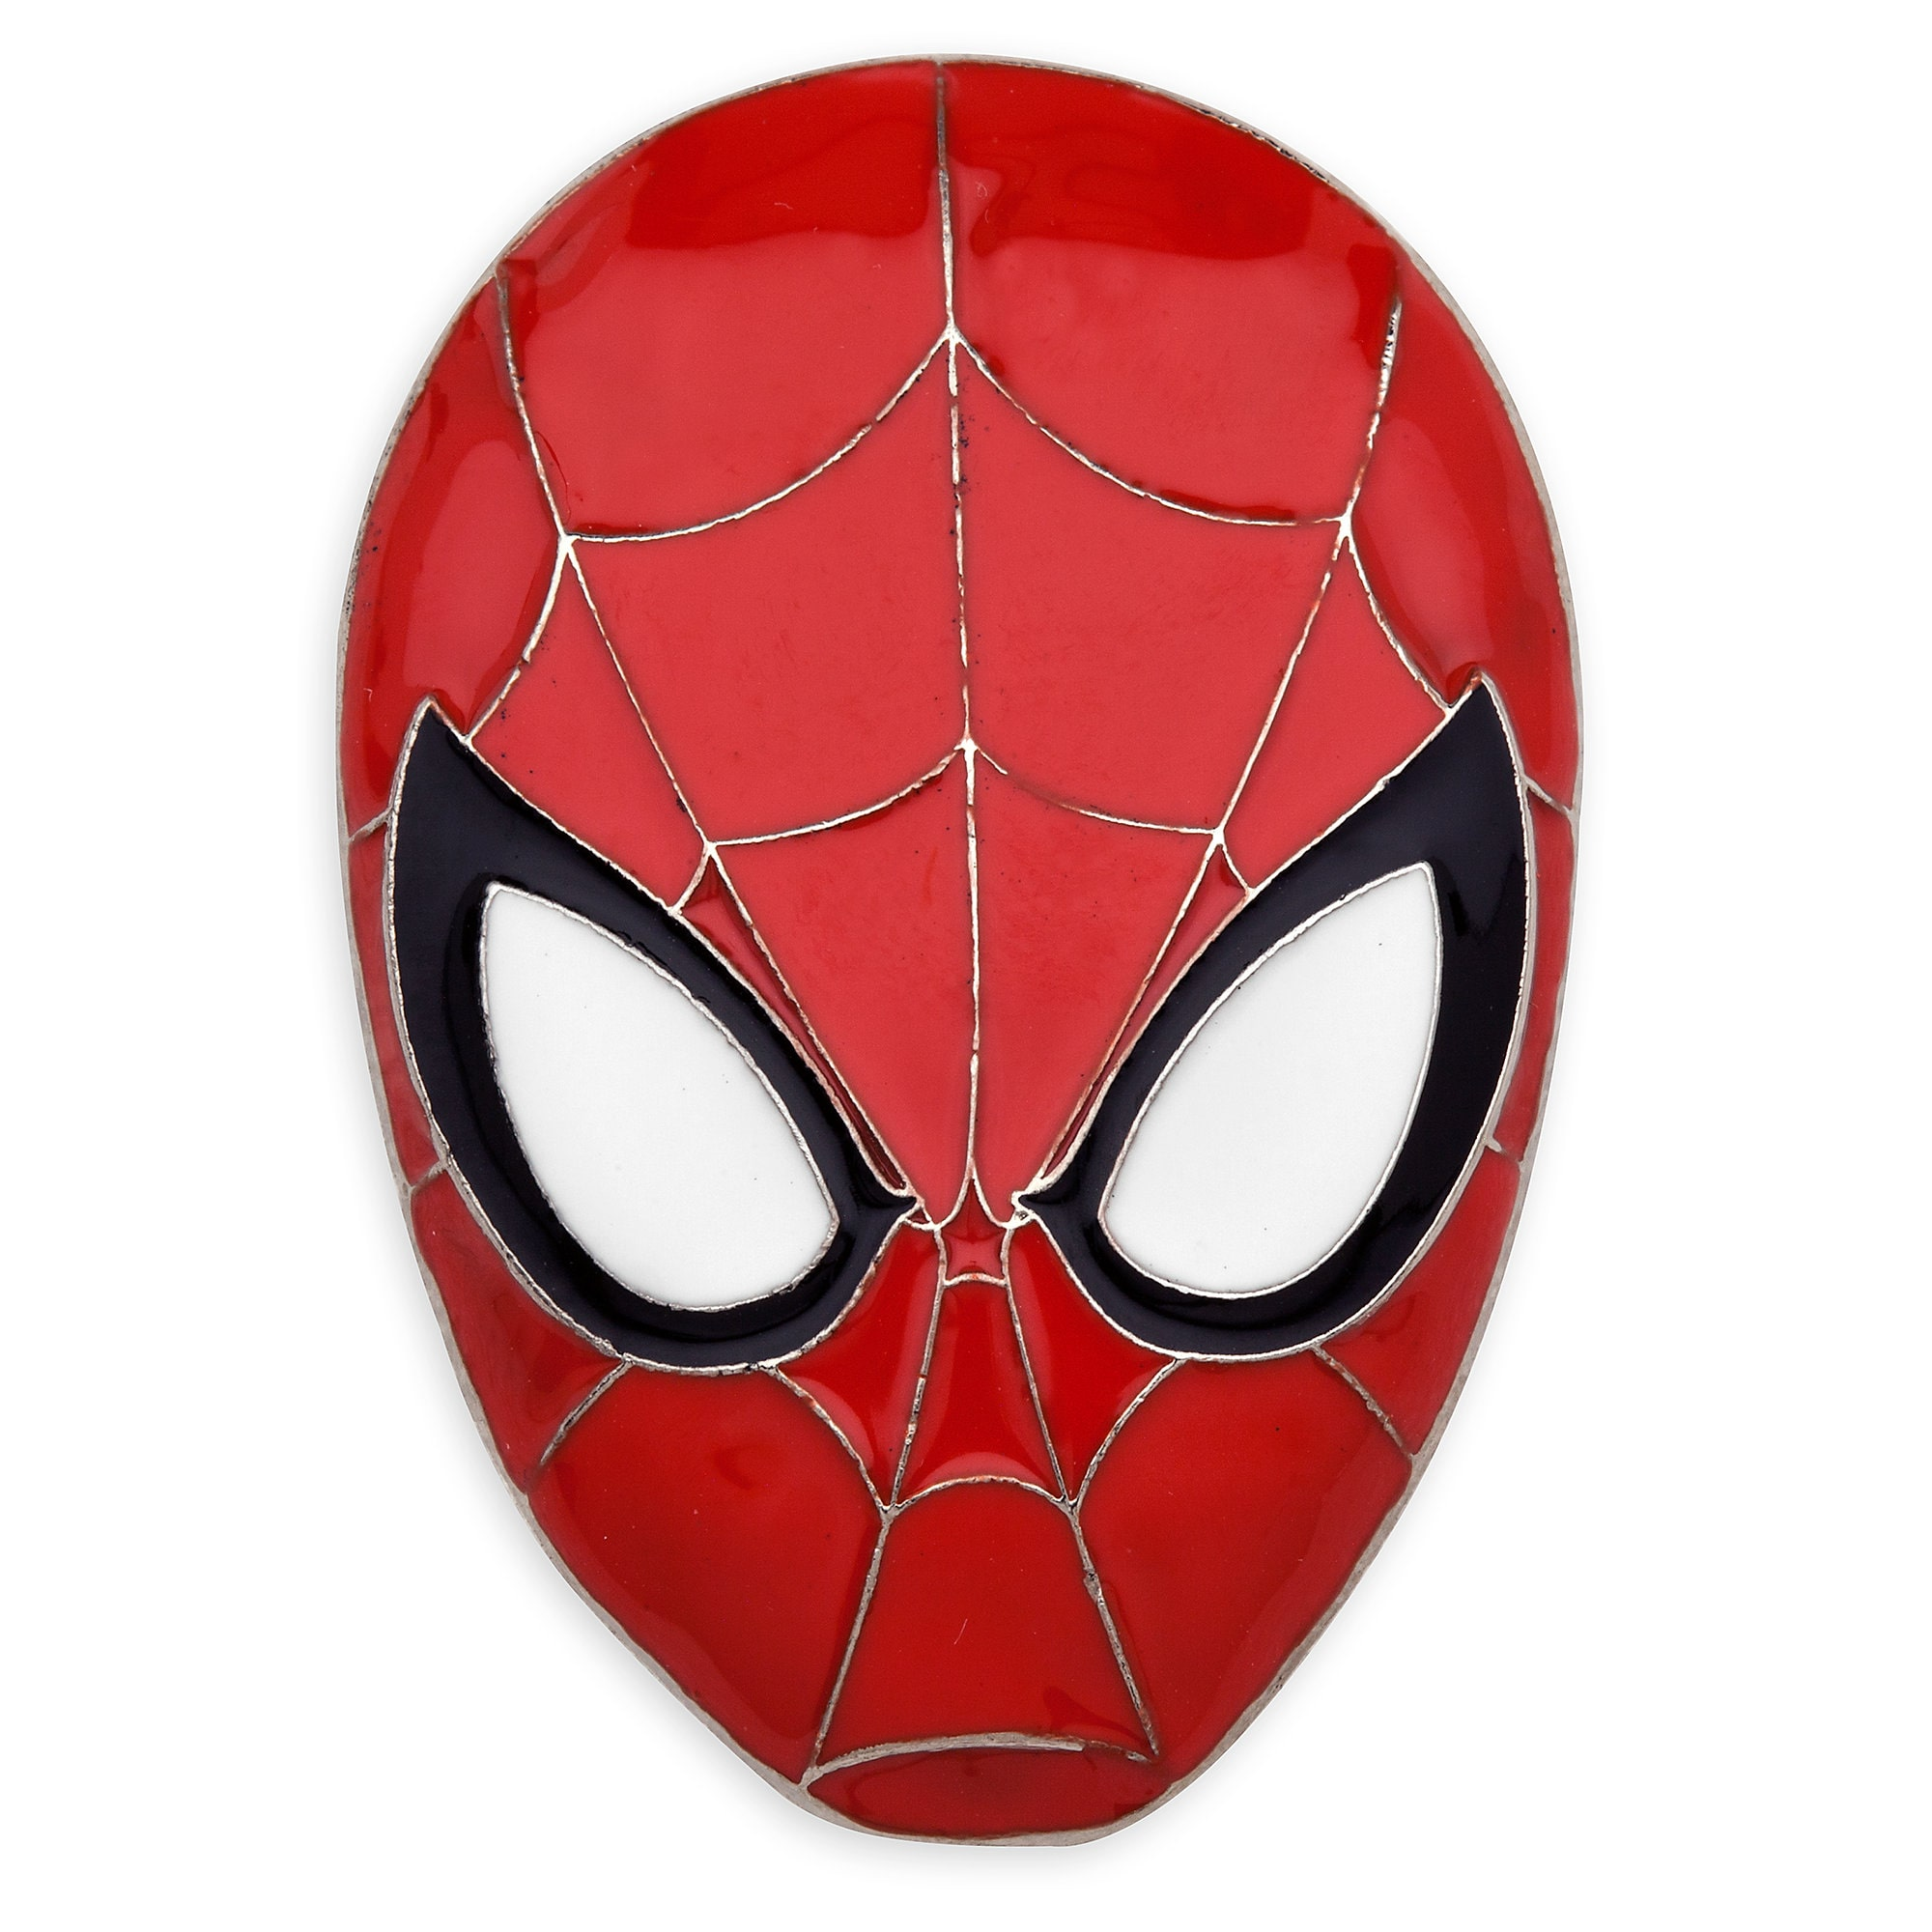 spider man dimensional mask pin shopdisney rh shopdisney com Spider-Man Logo Font Spidergwen Mask